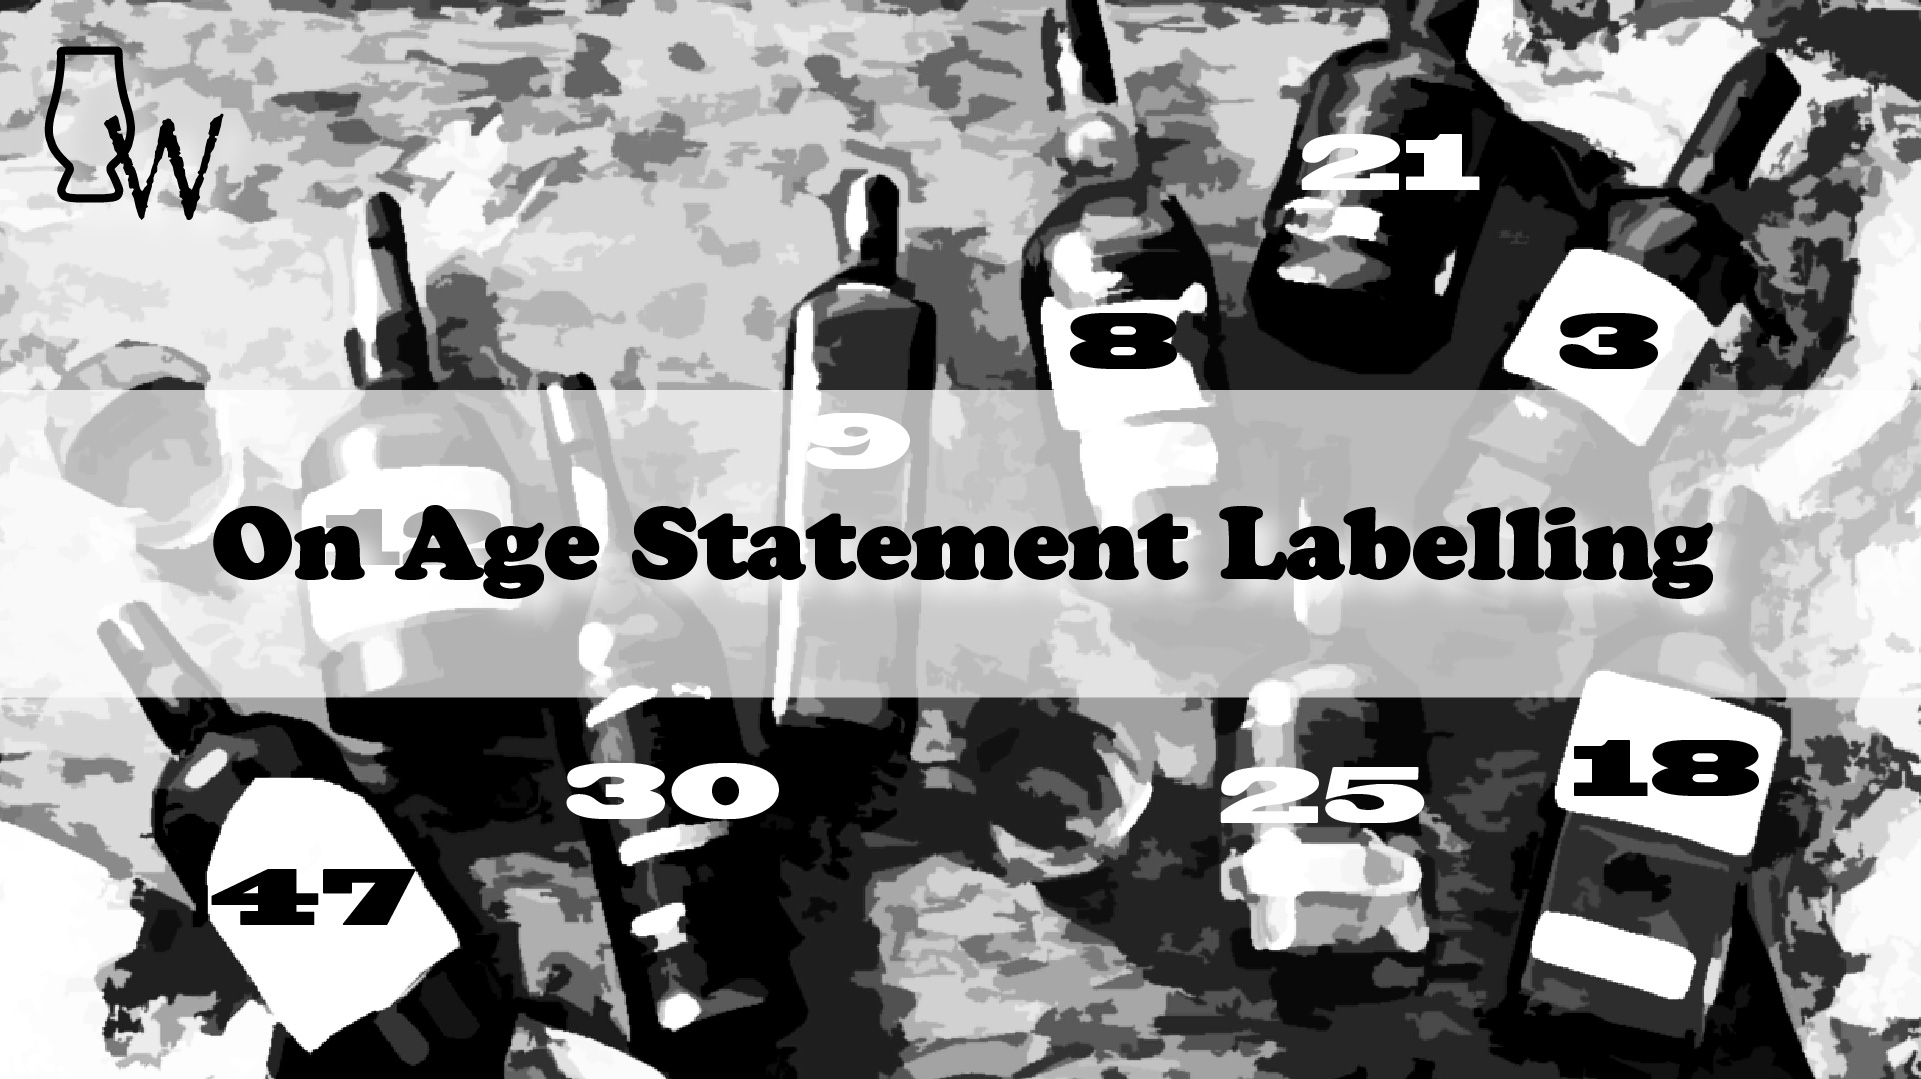 On Age Statement Labelling